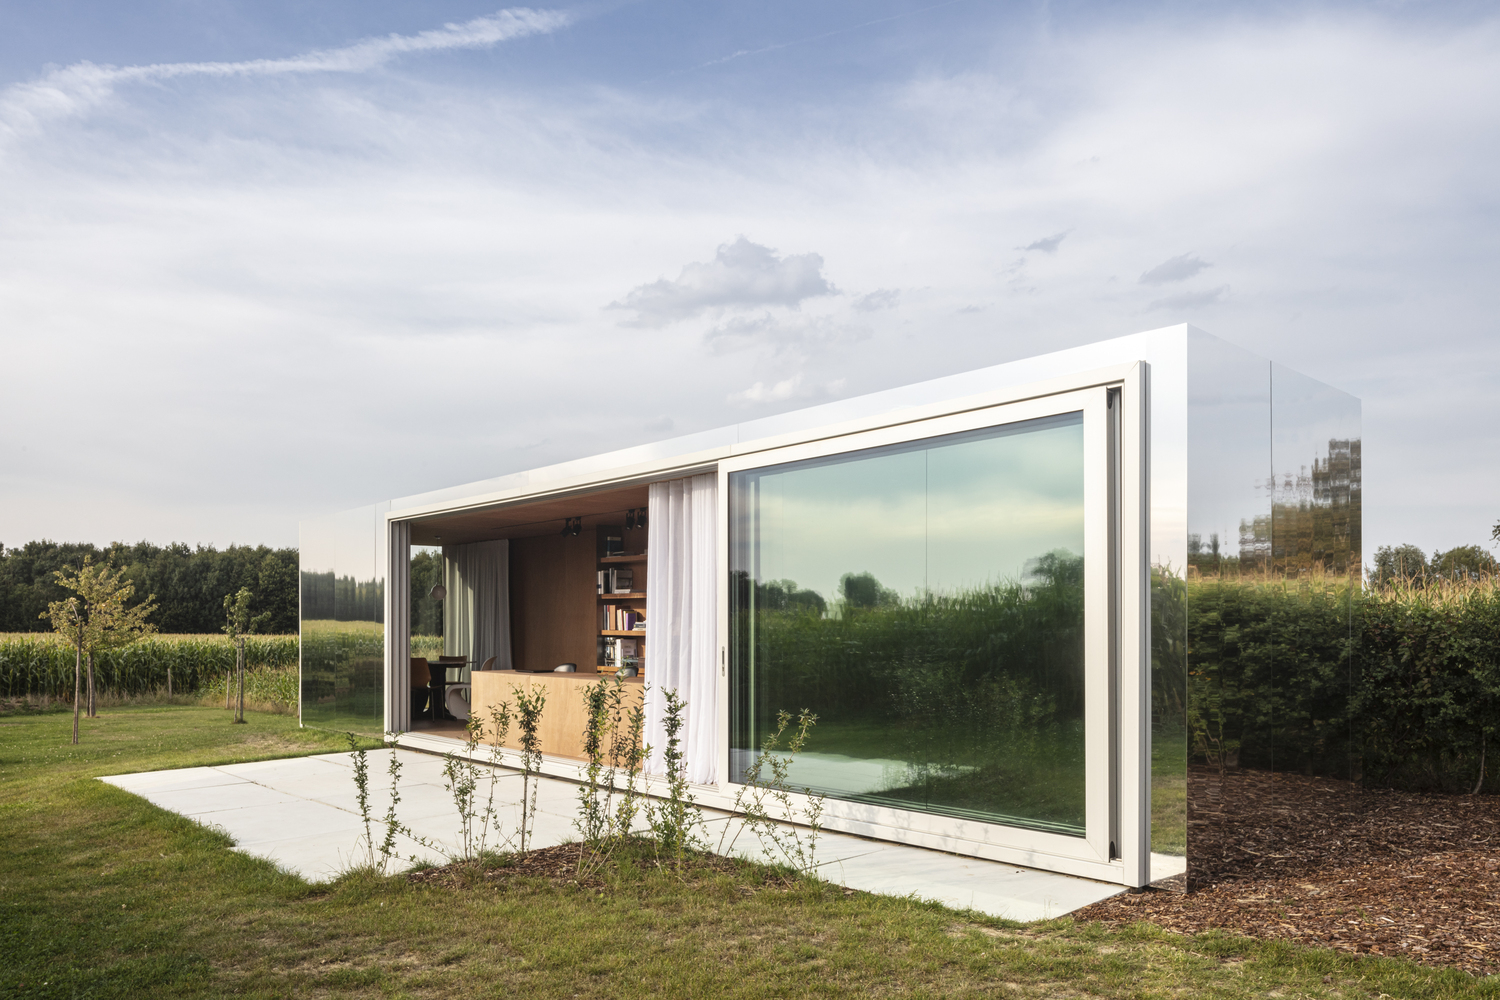 Shipping Container Homes Buildings Office In 40 Ft Shipping Container Covered With Mirrored Aluminum Panels Belgium